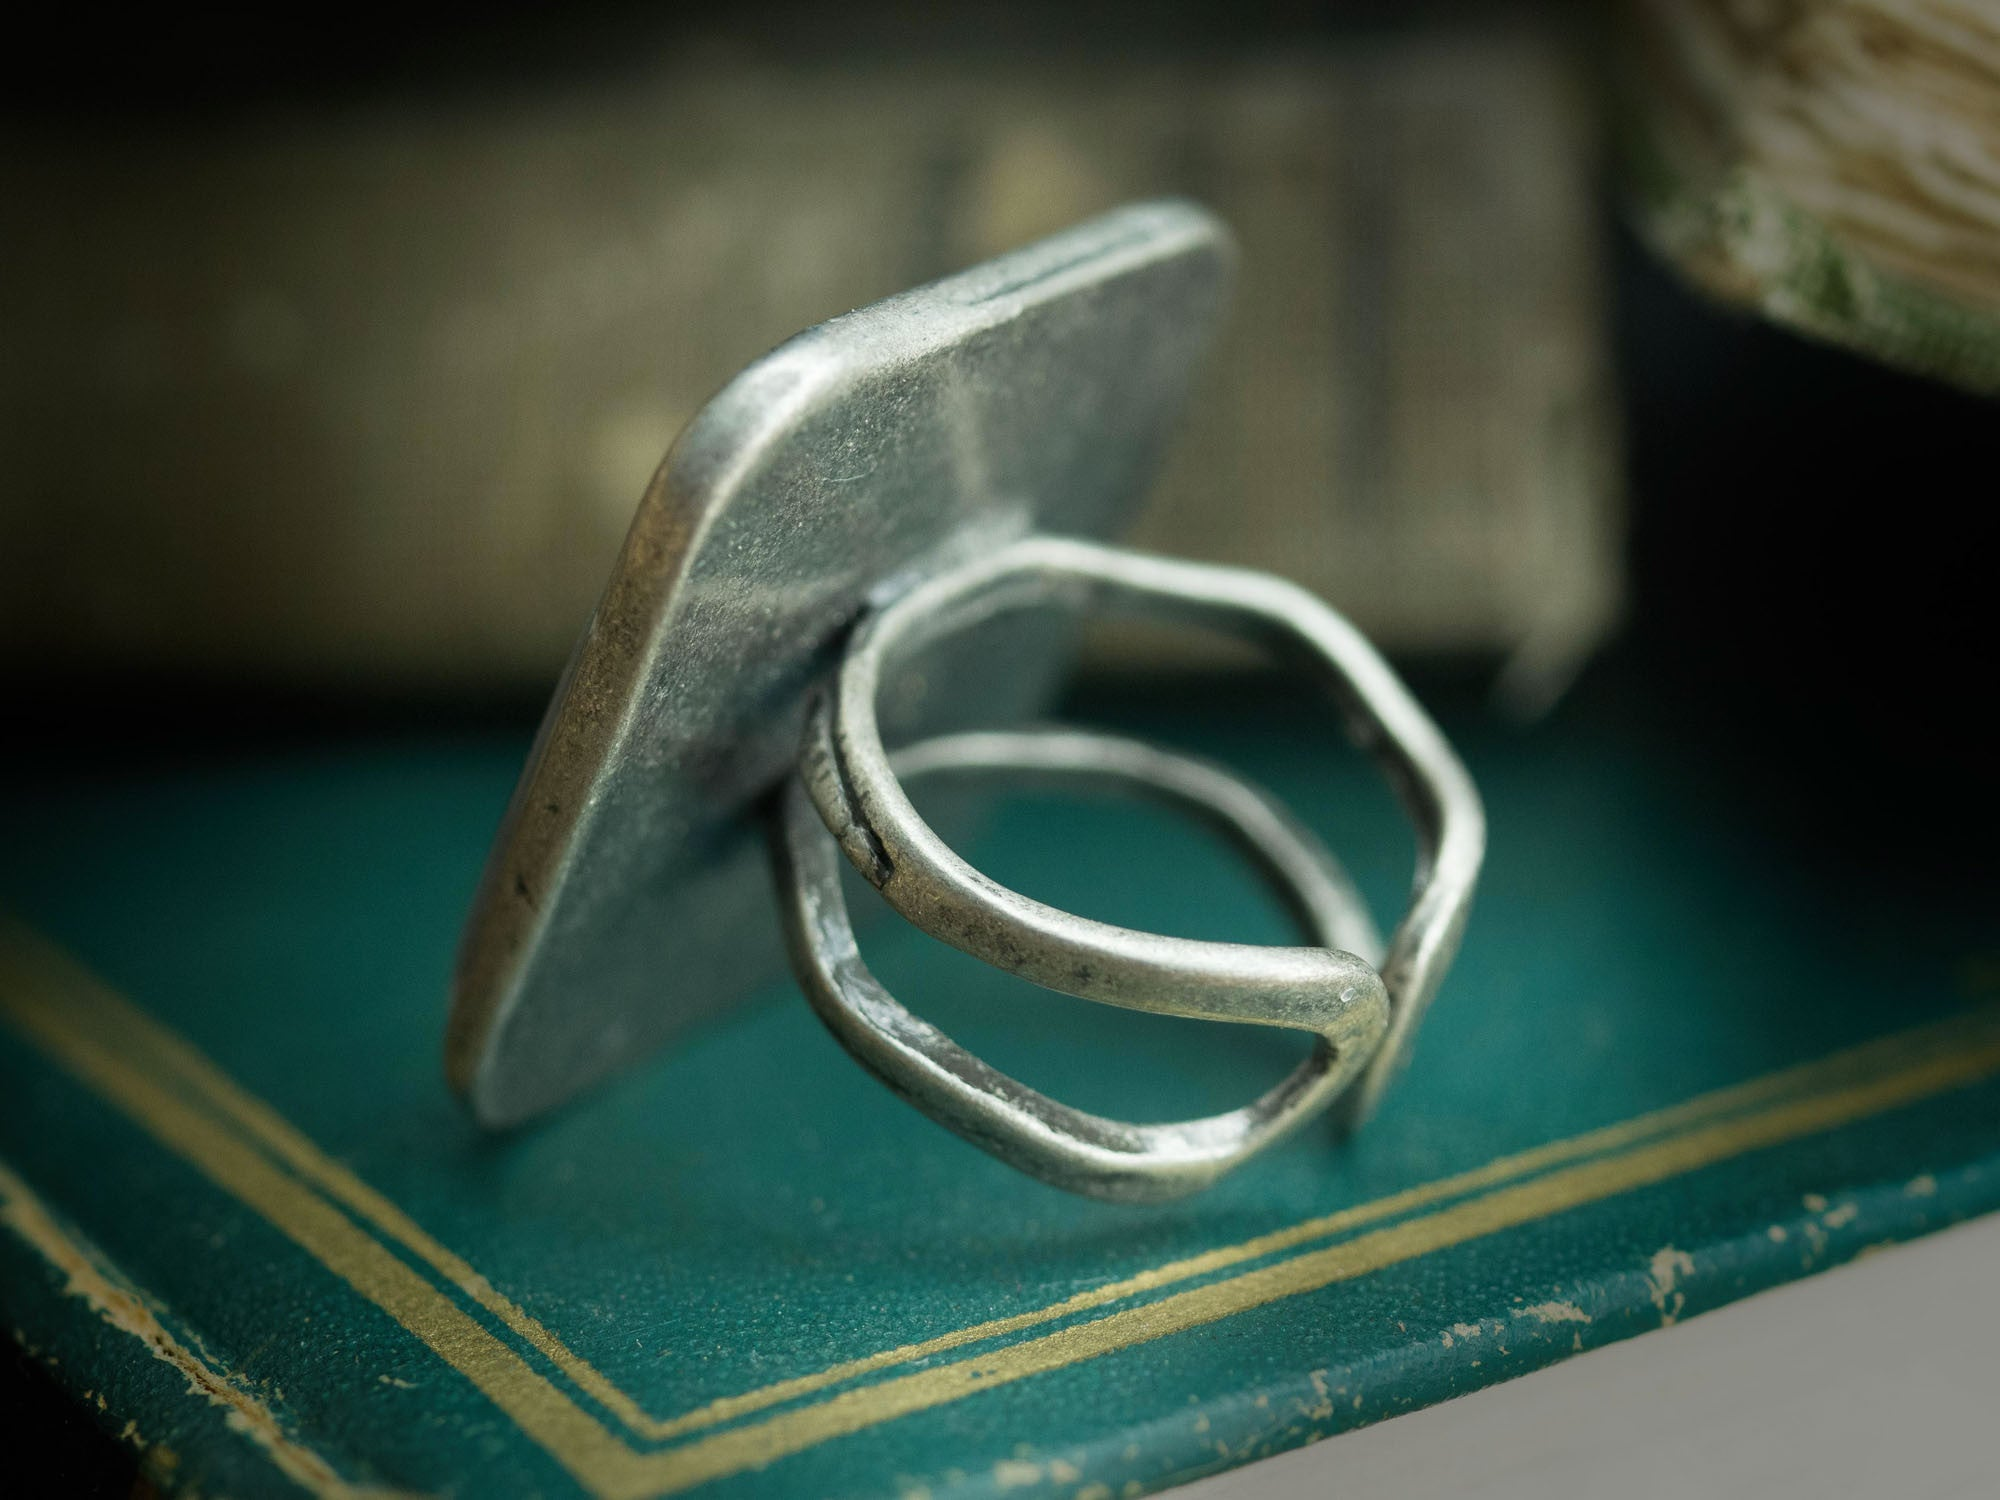 The discovery square ring, Jewelry by Danita Art